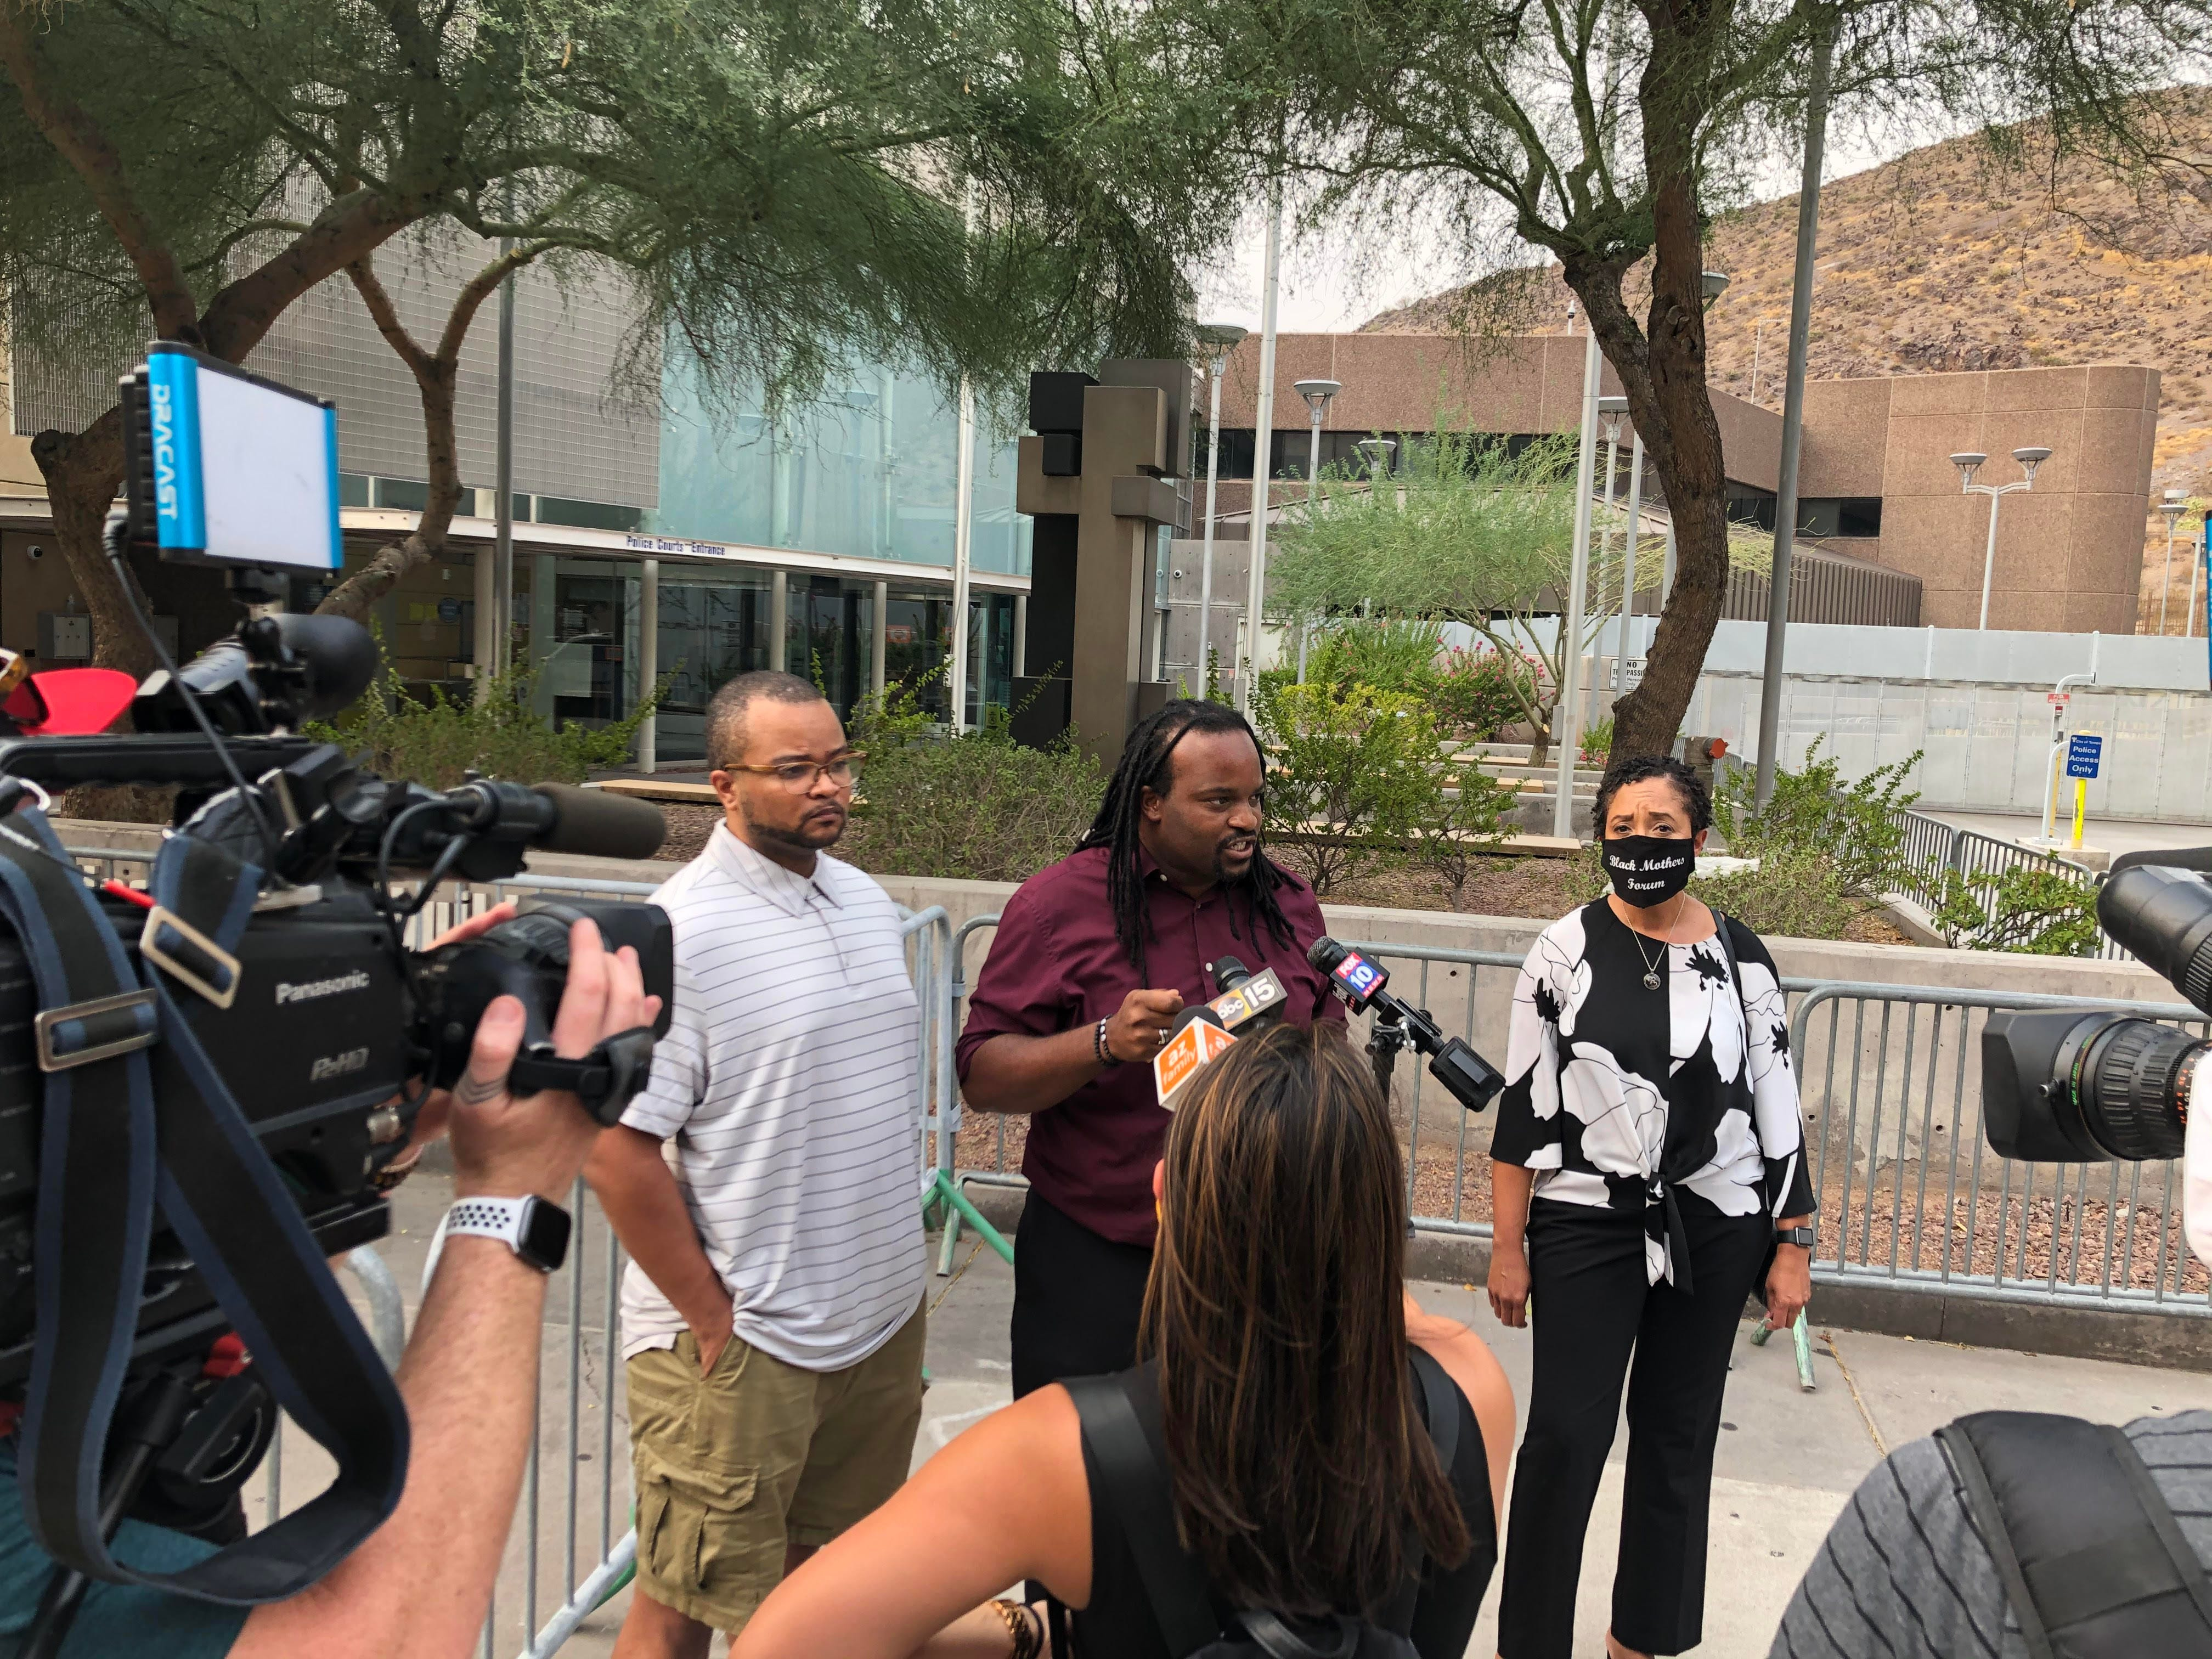 Kenneth Smith with Unity Collective, Janelle Wood with Black Mother's Forum, and Jacob Raiford with the W.E. Rising Project call for the firing of a Tempe police officer accused of holding an unarmed black man at gunpoint during a media briefing on Sept. 8, 2020.